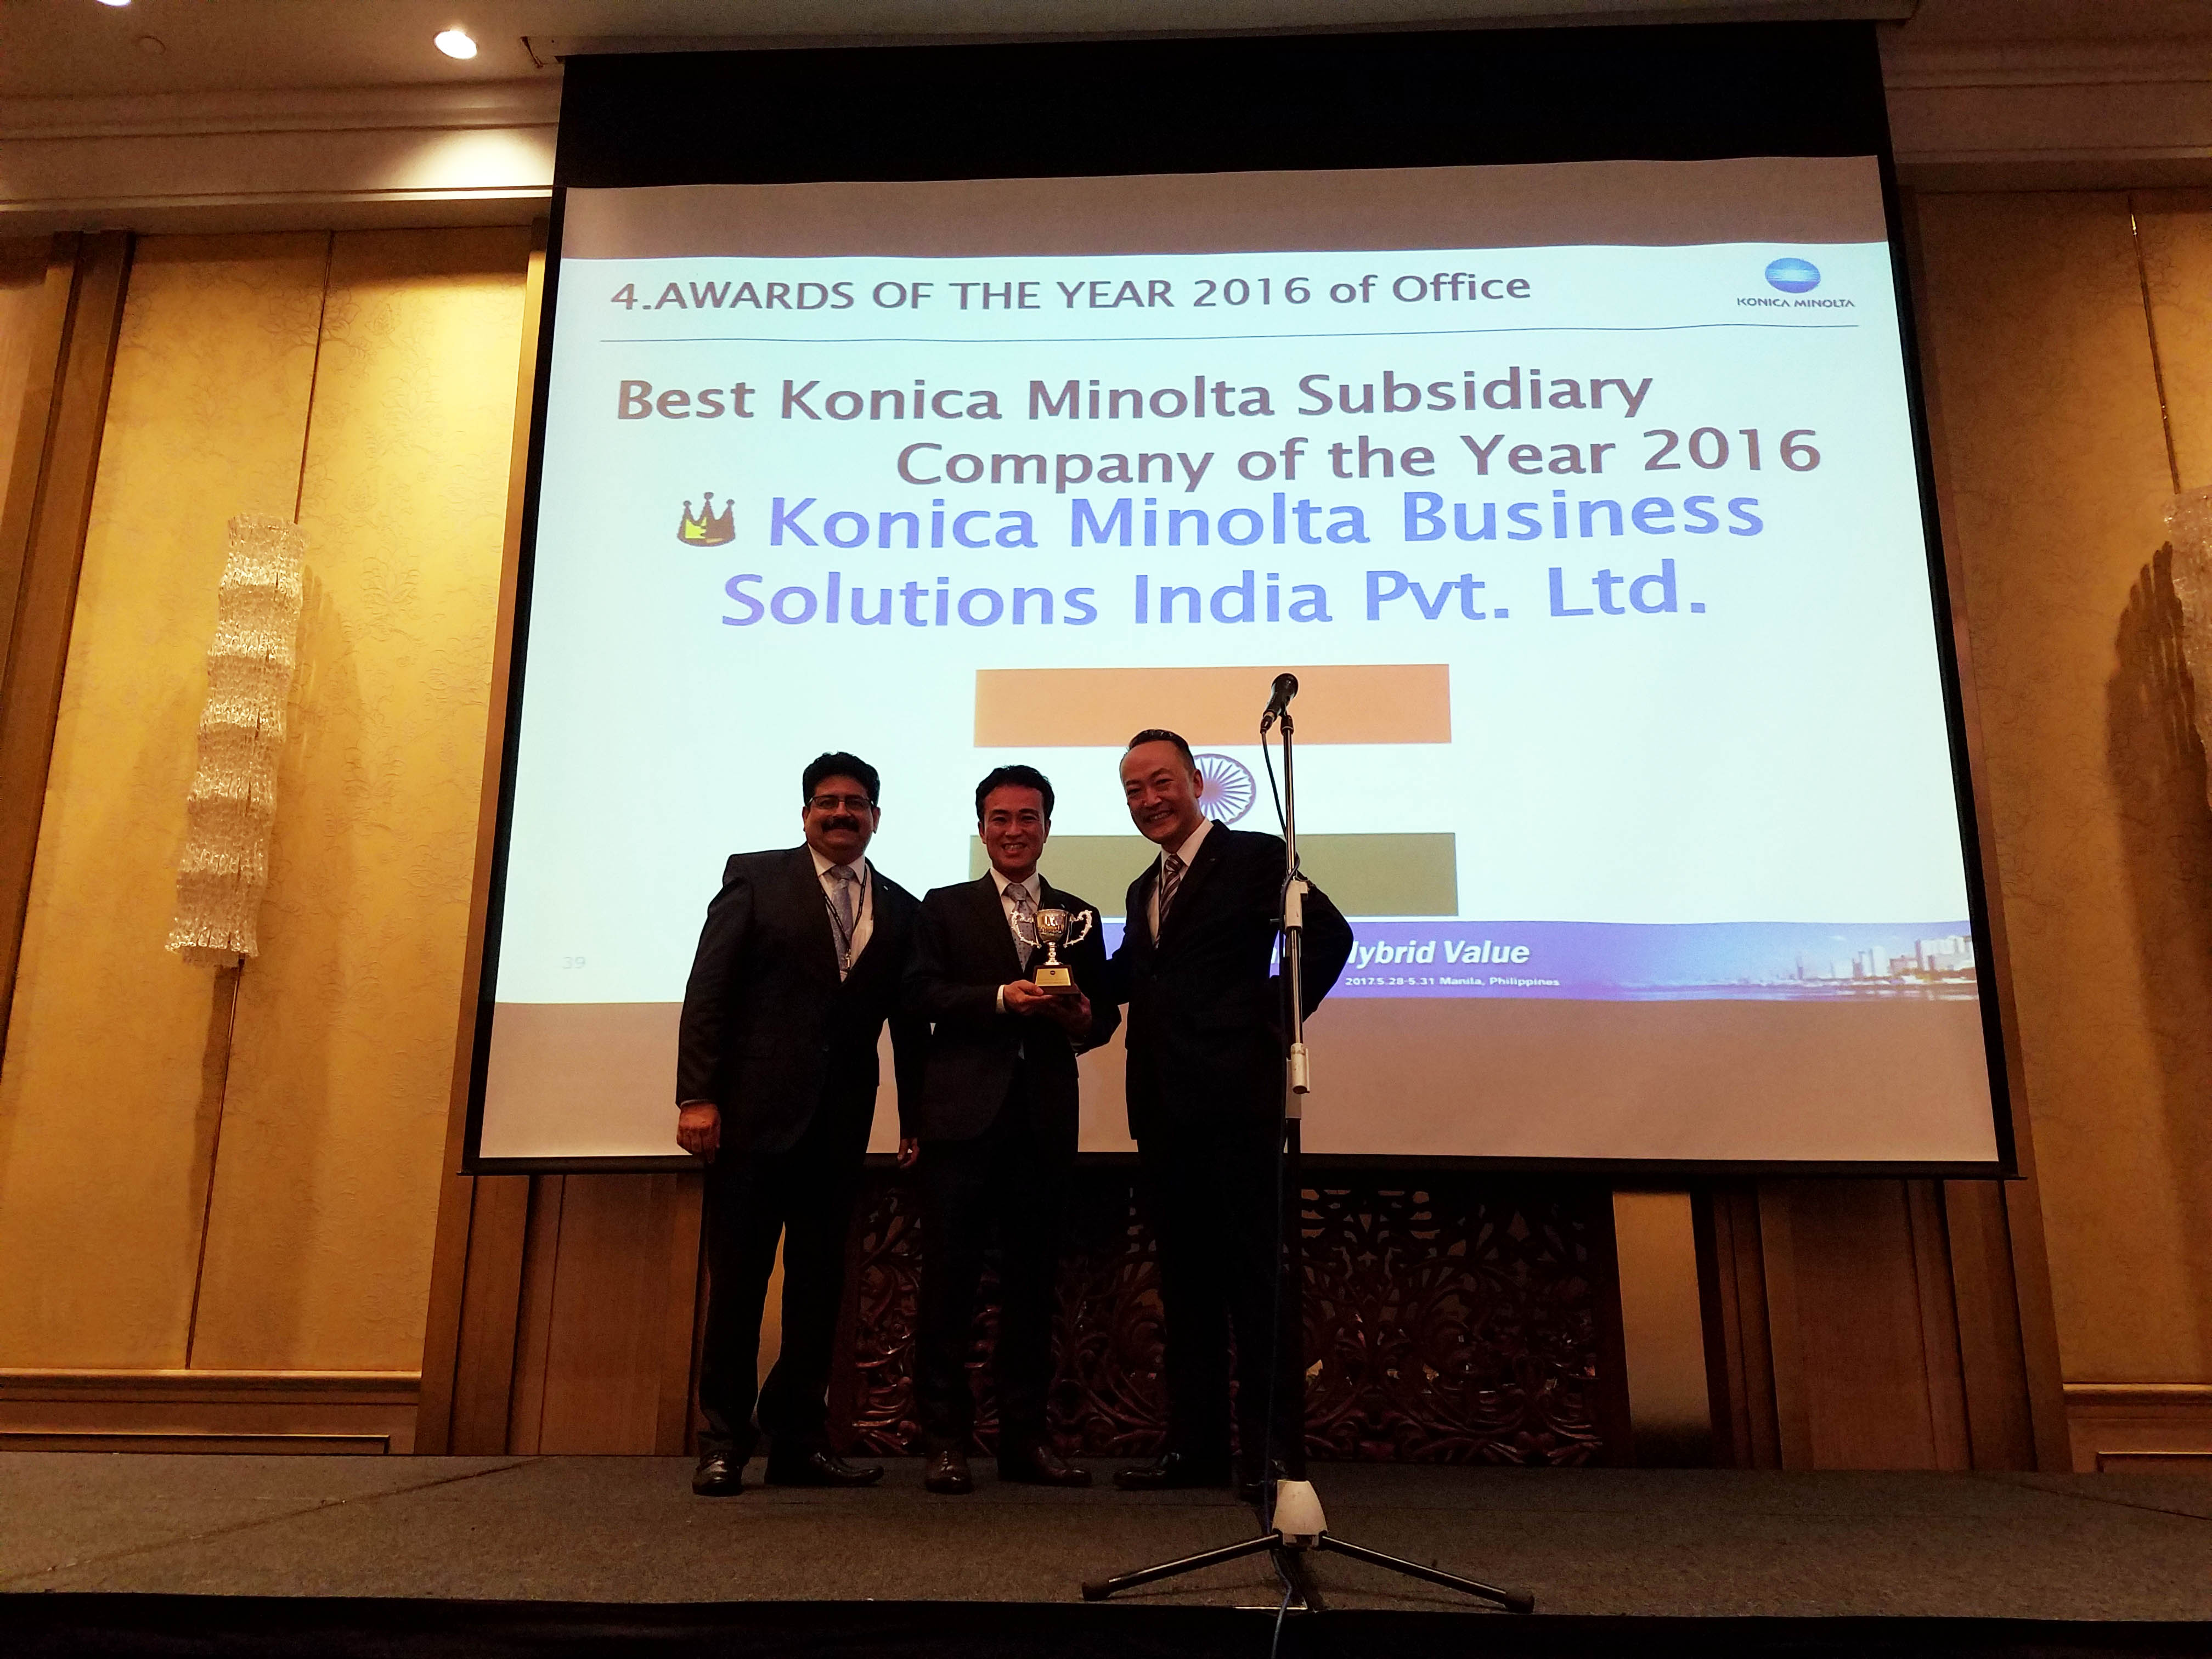 (from left) Rajeev Ahuja, Business Consultant IP, Daisuke Mori, MD, Konica Minolta India and Shoei Yamana, CEO, Konica Minolta